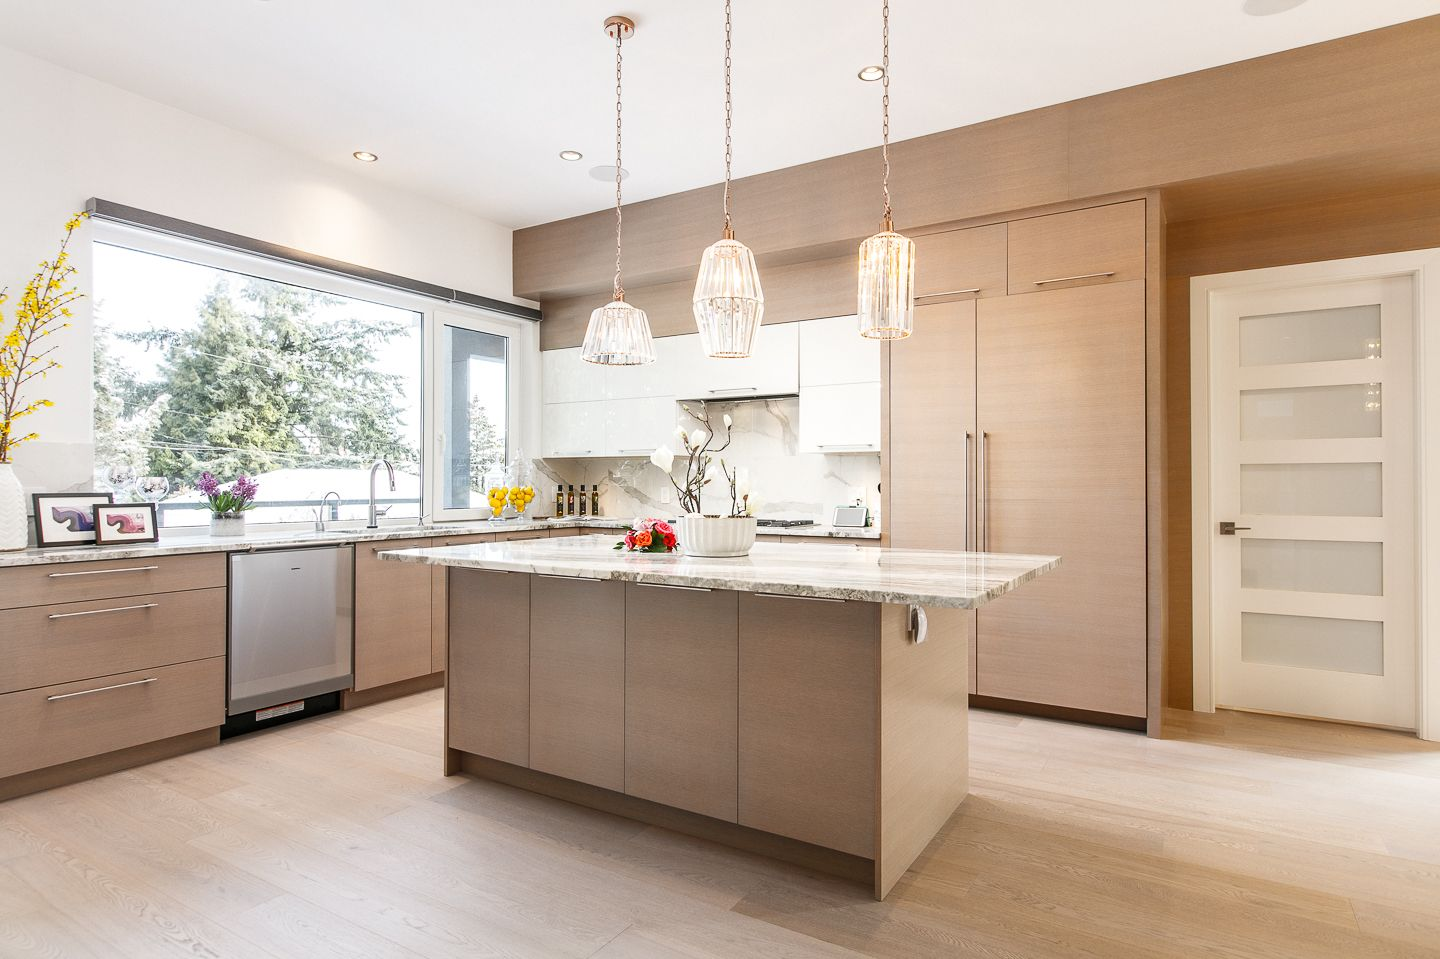 Photo 8: Photos: 6978 LAUREL ST in VANCOUVER: South Cambie House for sale (Vancouver West)